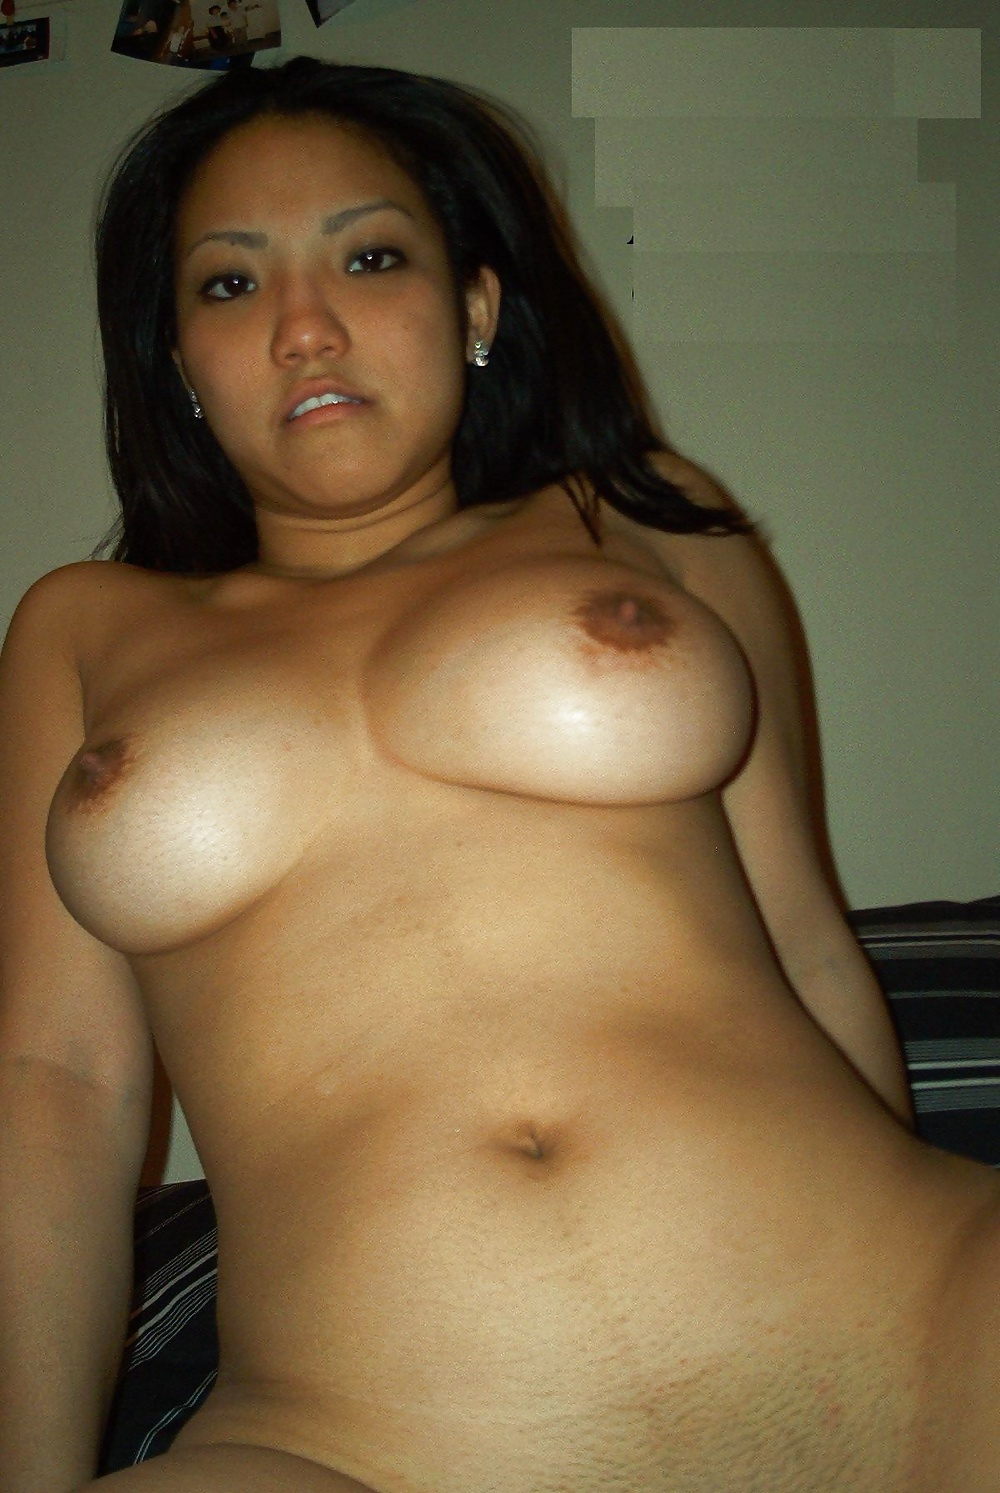 Malay nude shots 12